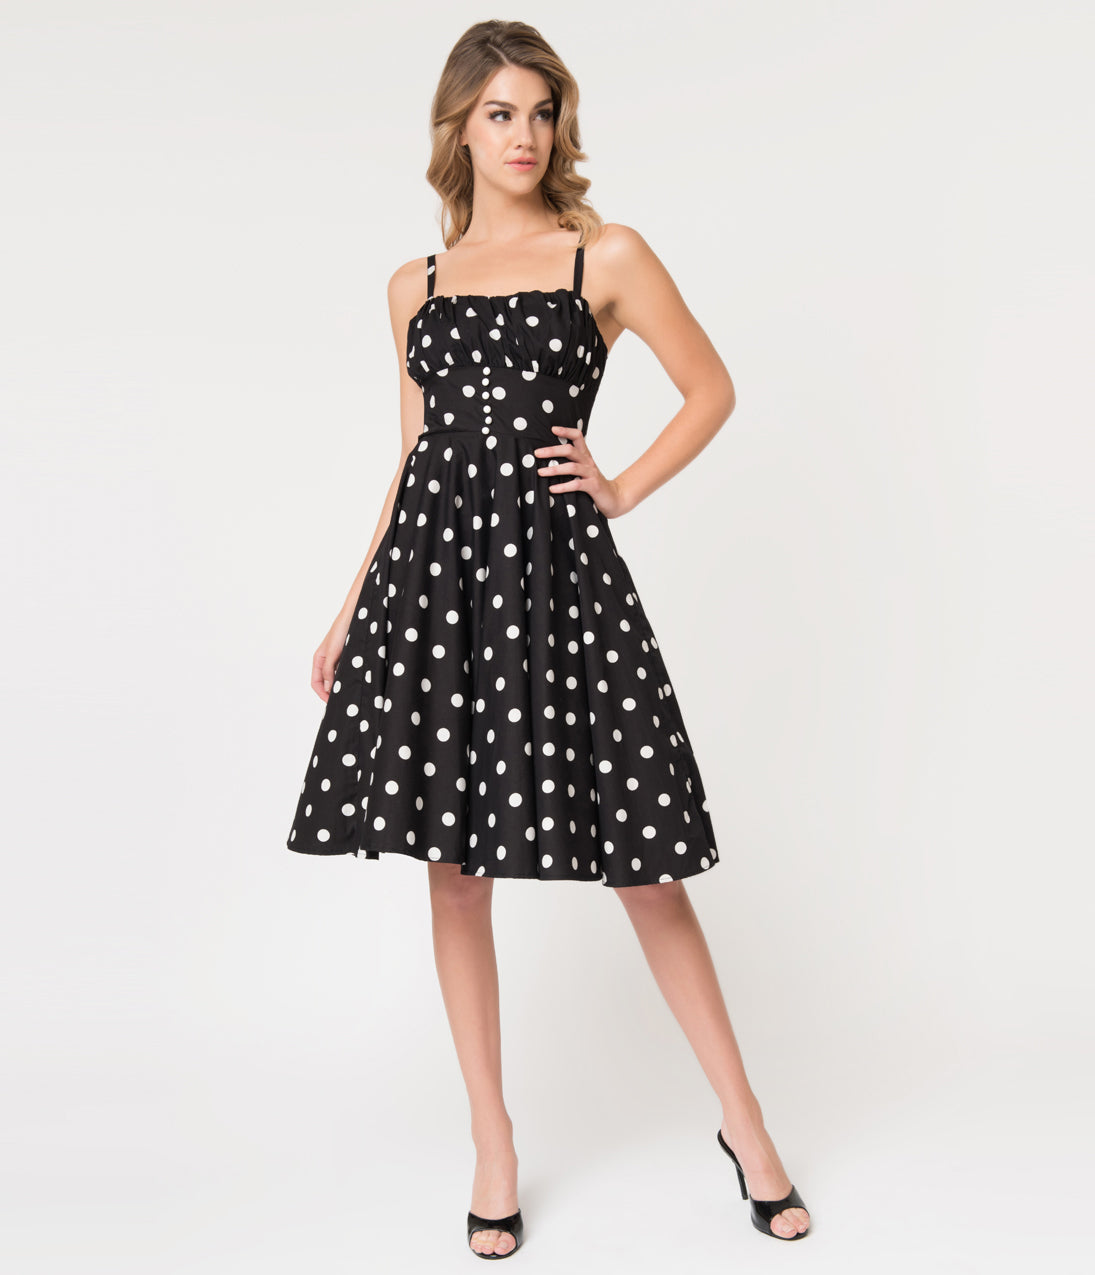 Vintage Polka Dot Dresses 50s Spotty And Ditsy Prints